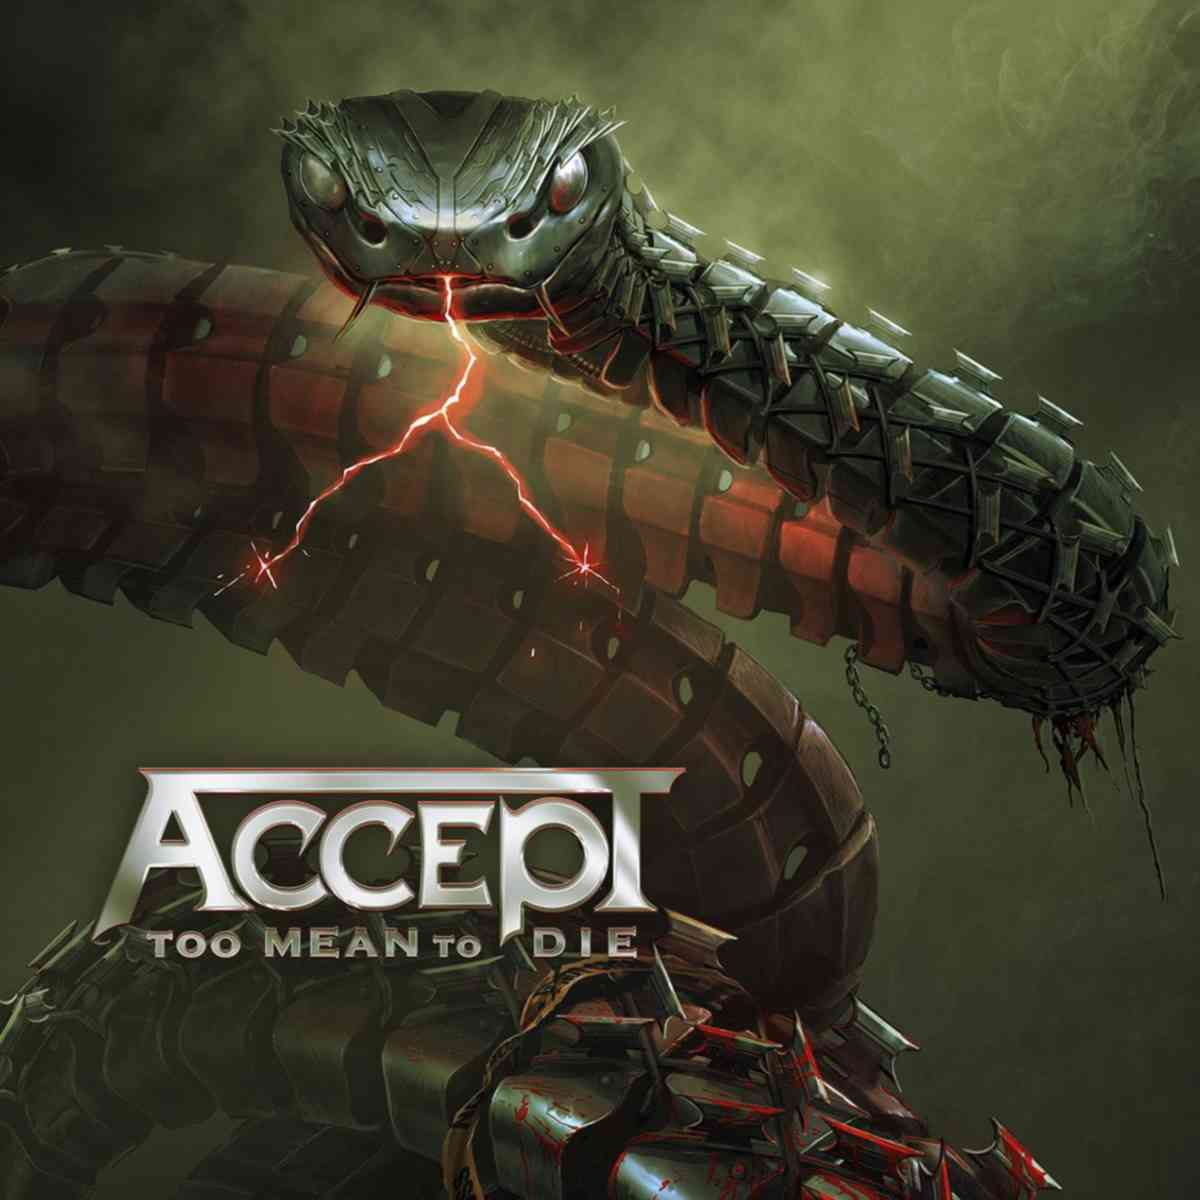 Accept - Too Mean To Die - album cover